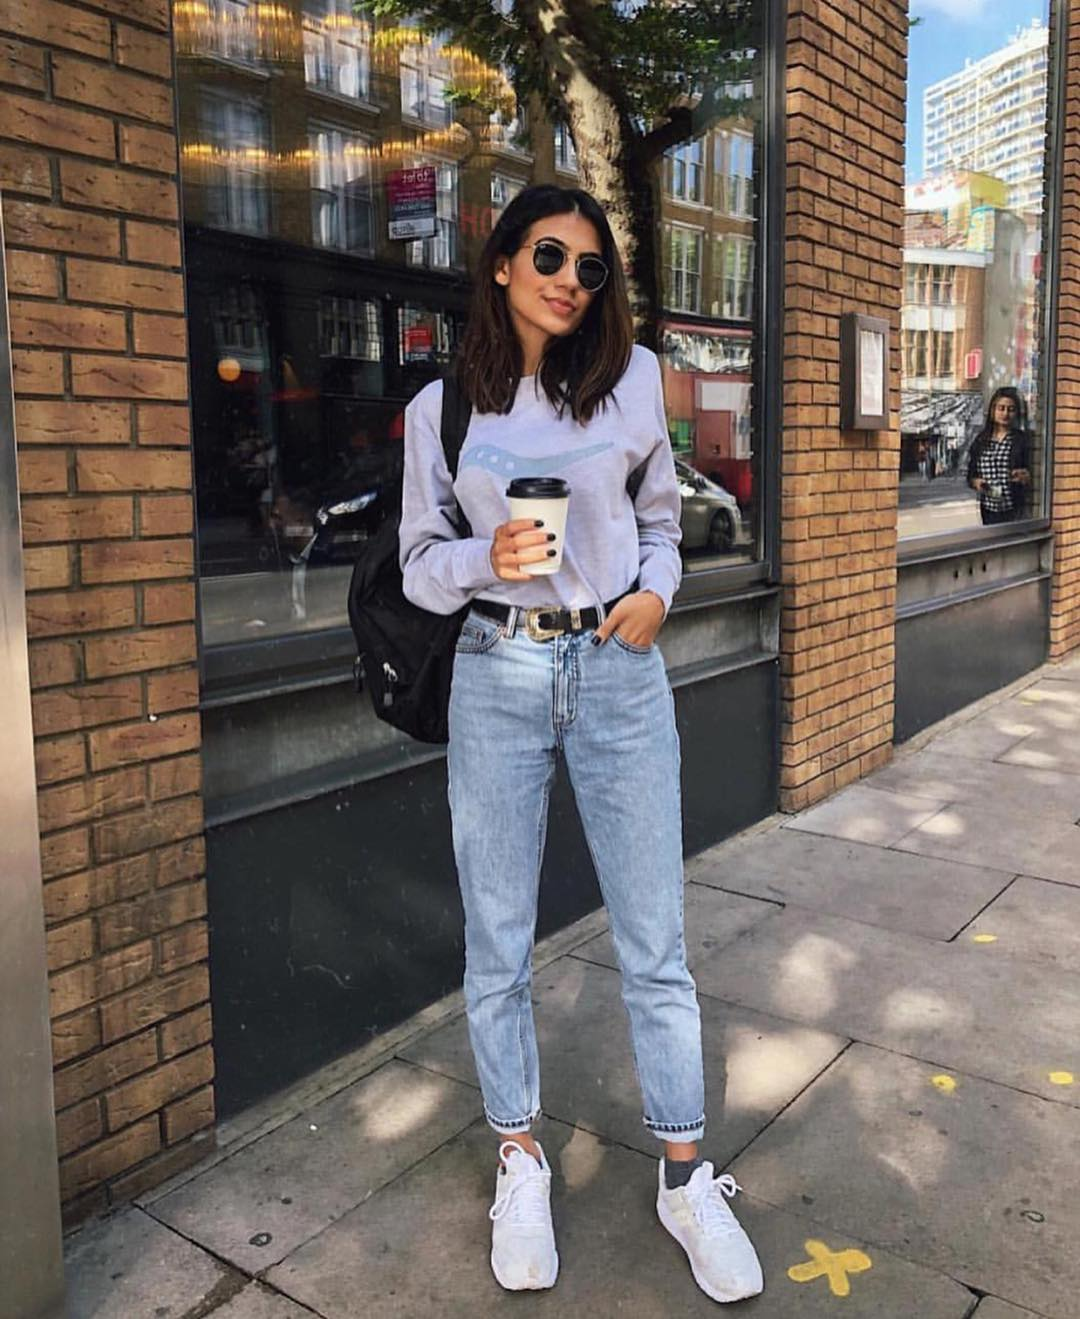 1990 Style Essentials For This Spring: Summer Looks To Try Now 2020